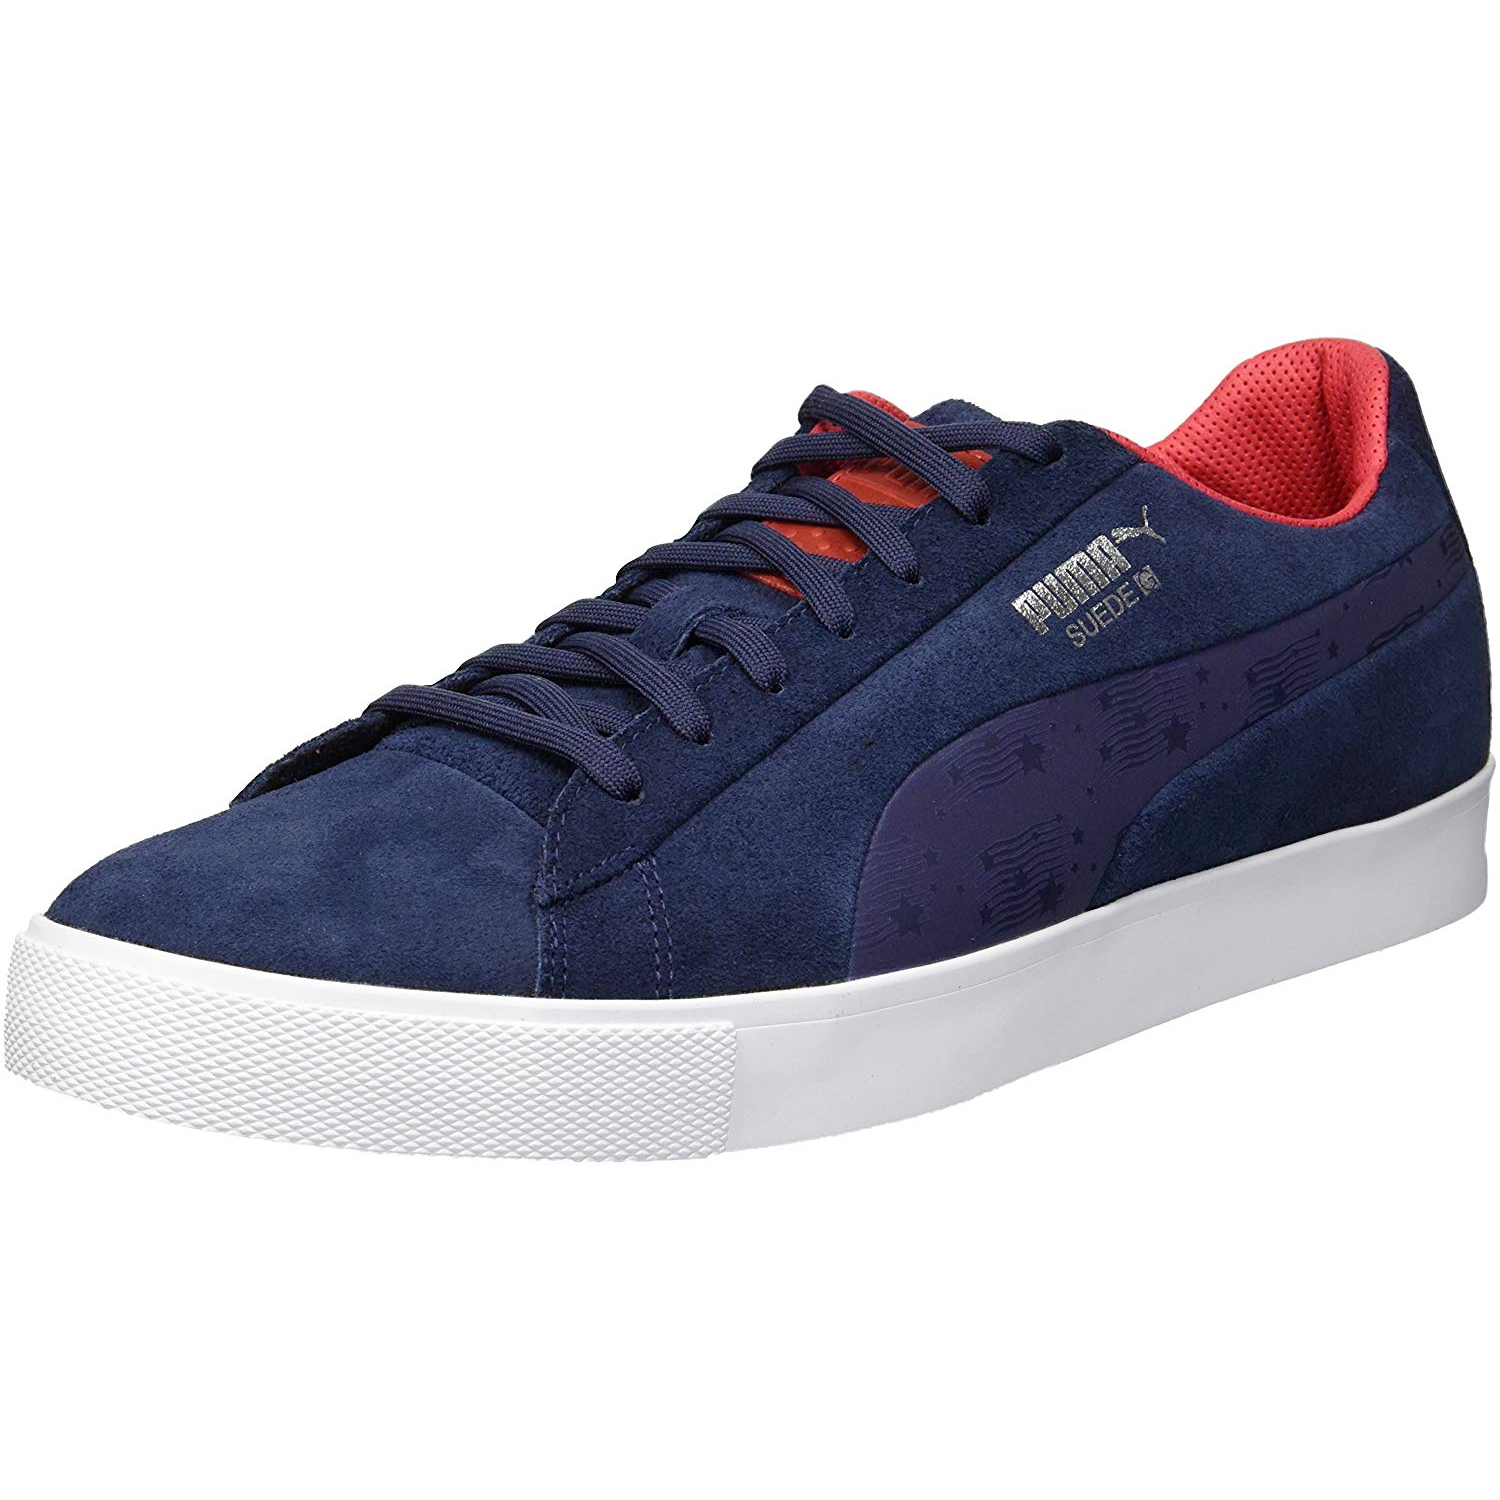 Details about Puma Golf Mens Suede G Ryder Cup Edition Team Spikeless Golf Shoe NEW